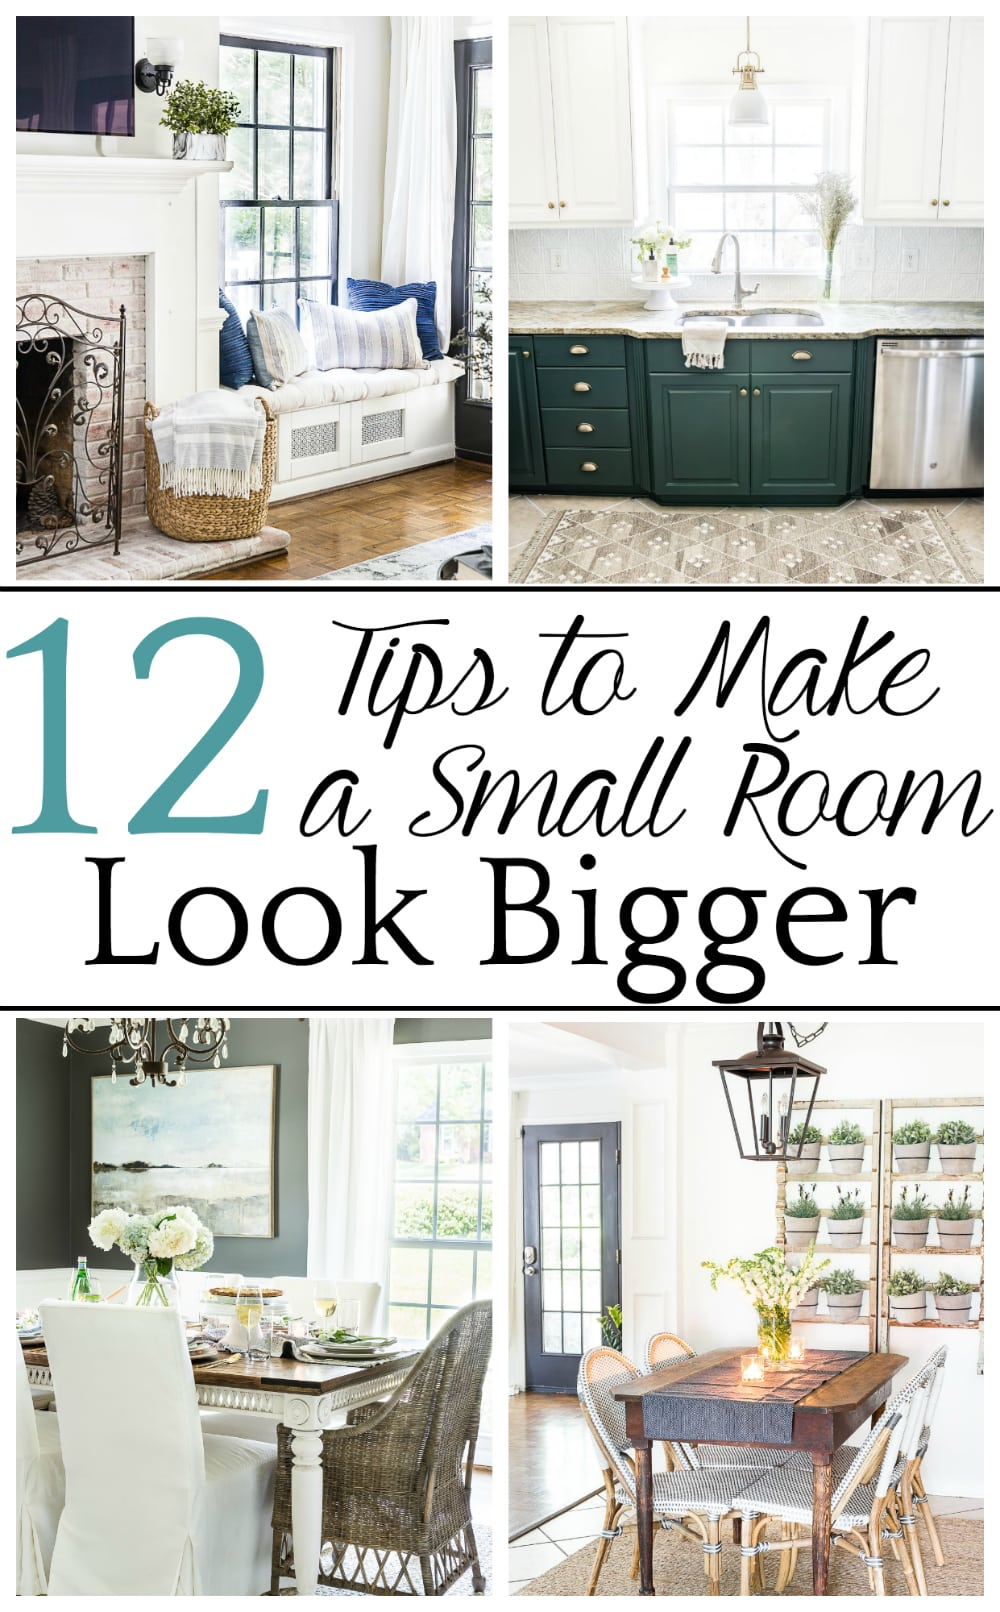 How to Make a Small Room Look Bigger - Bless\'er House